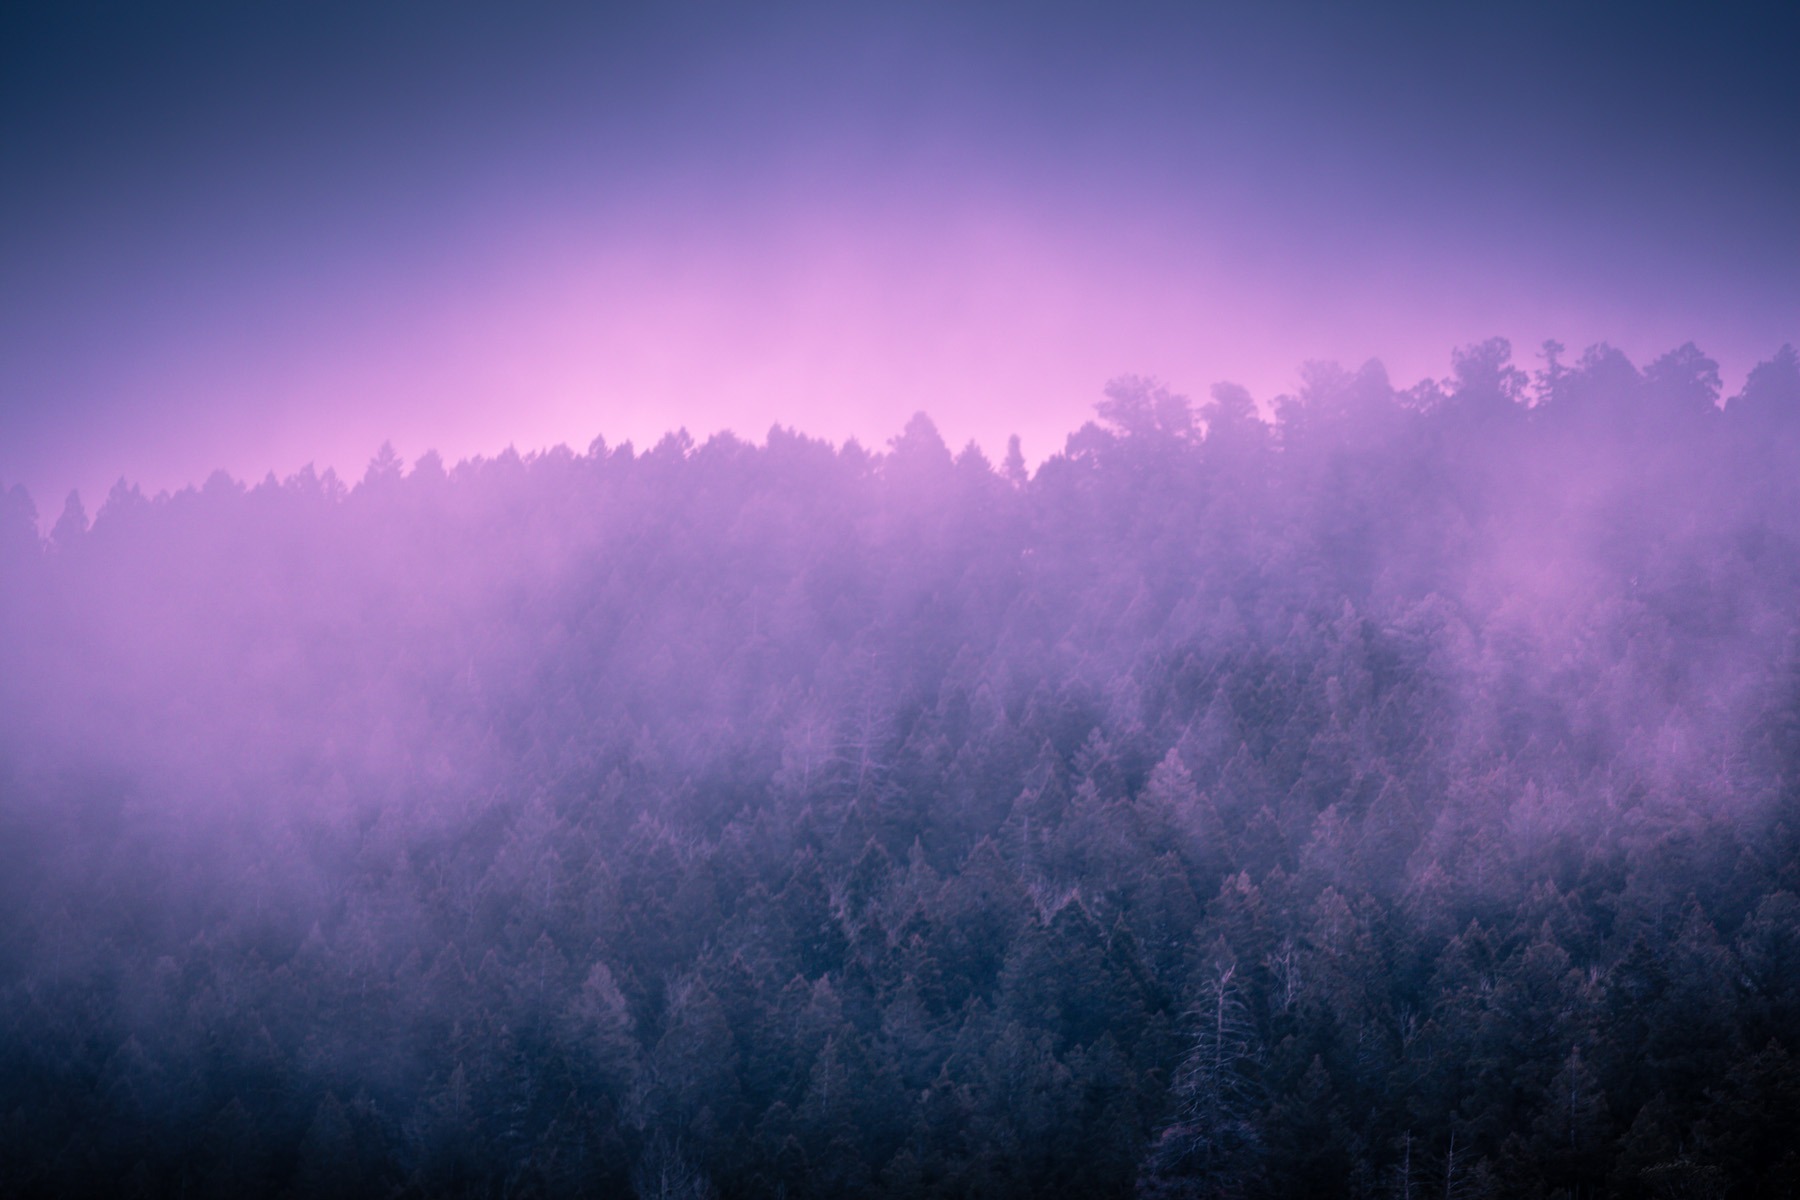 purple mountain fog